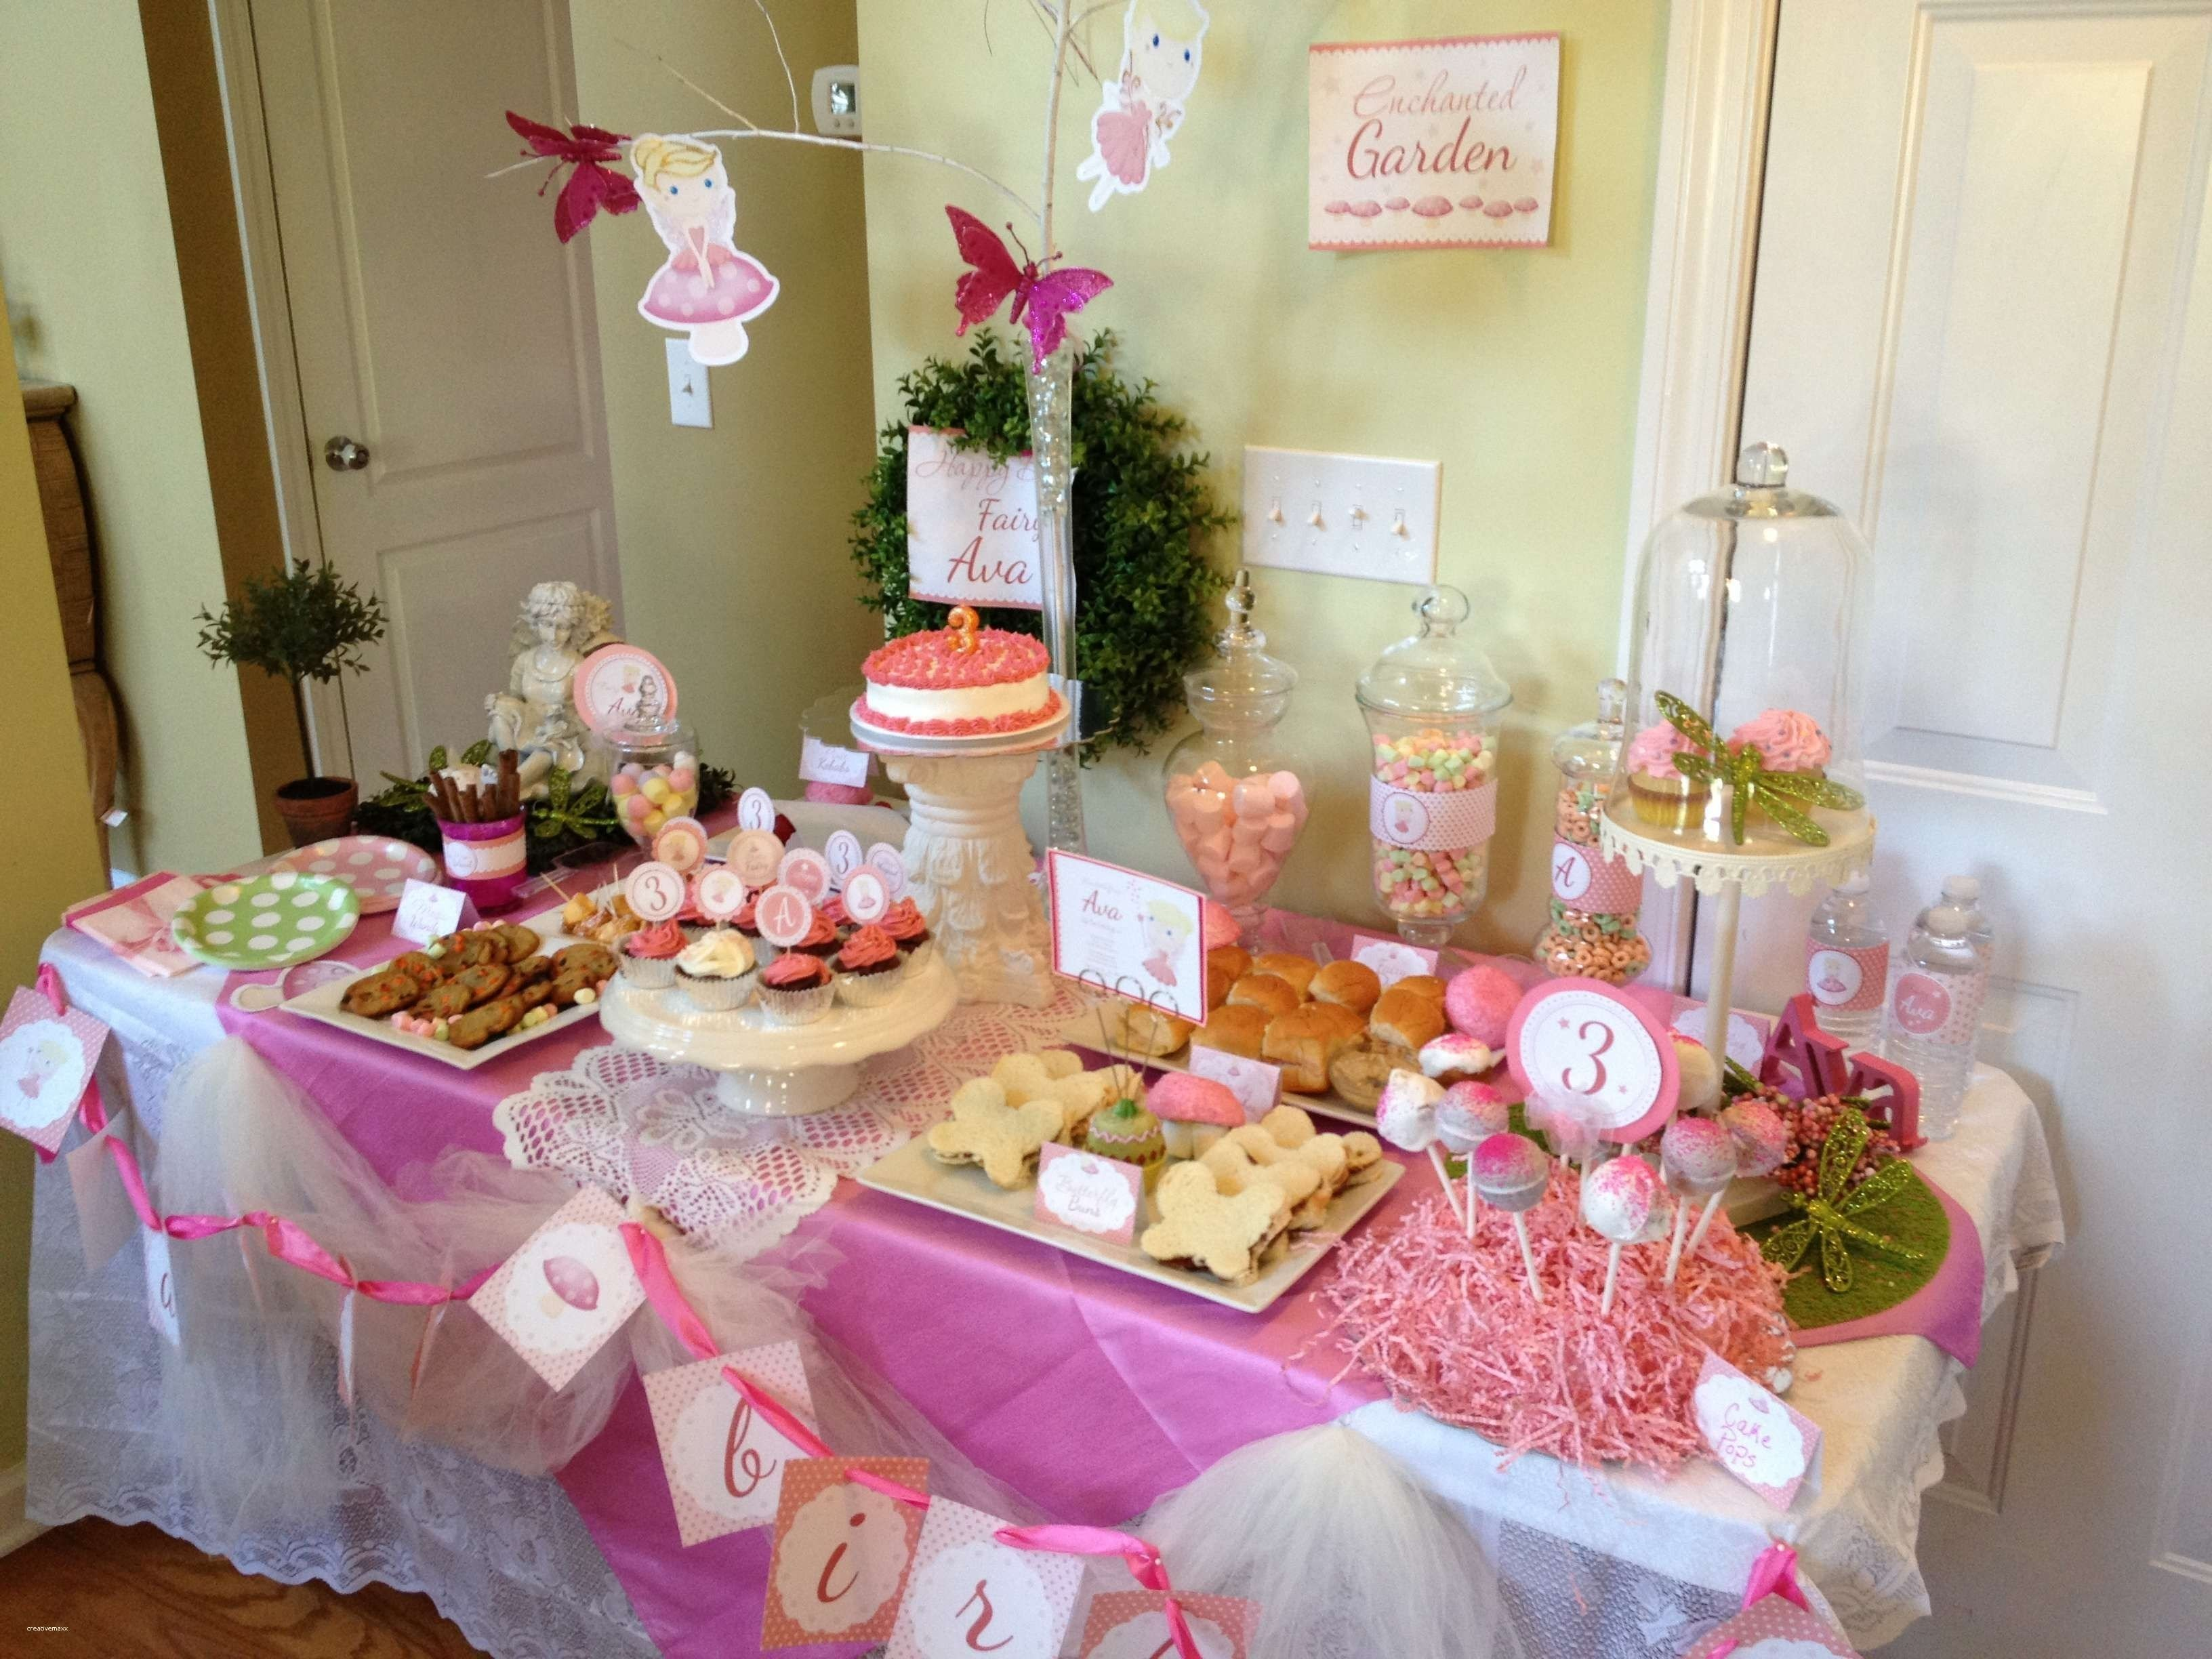 10 Stunning Inexpensive Birthday Party Ideas For Adults elegant inexpensive birthday party ideas for adults birthday party